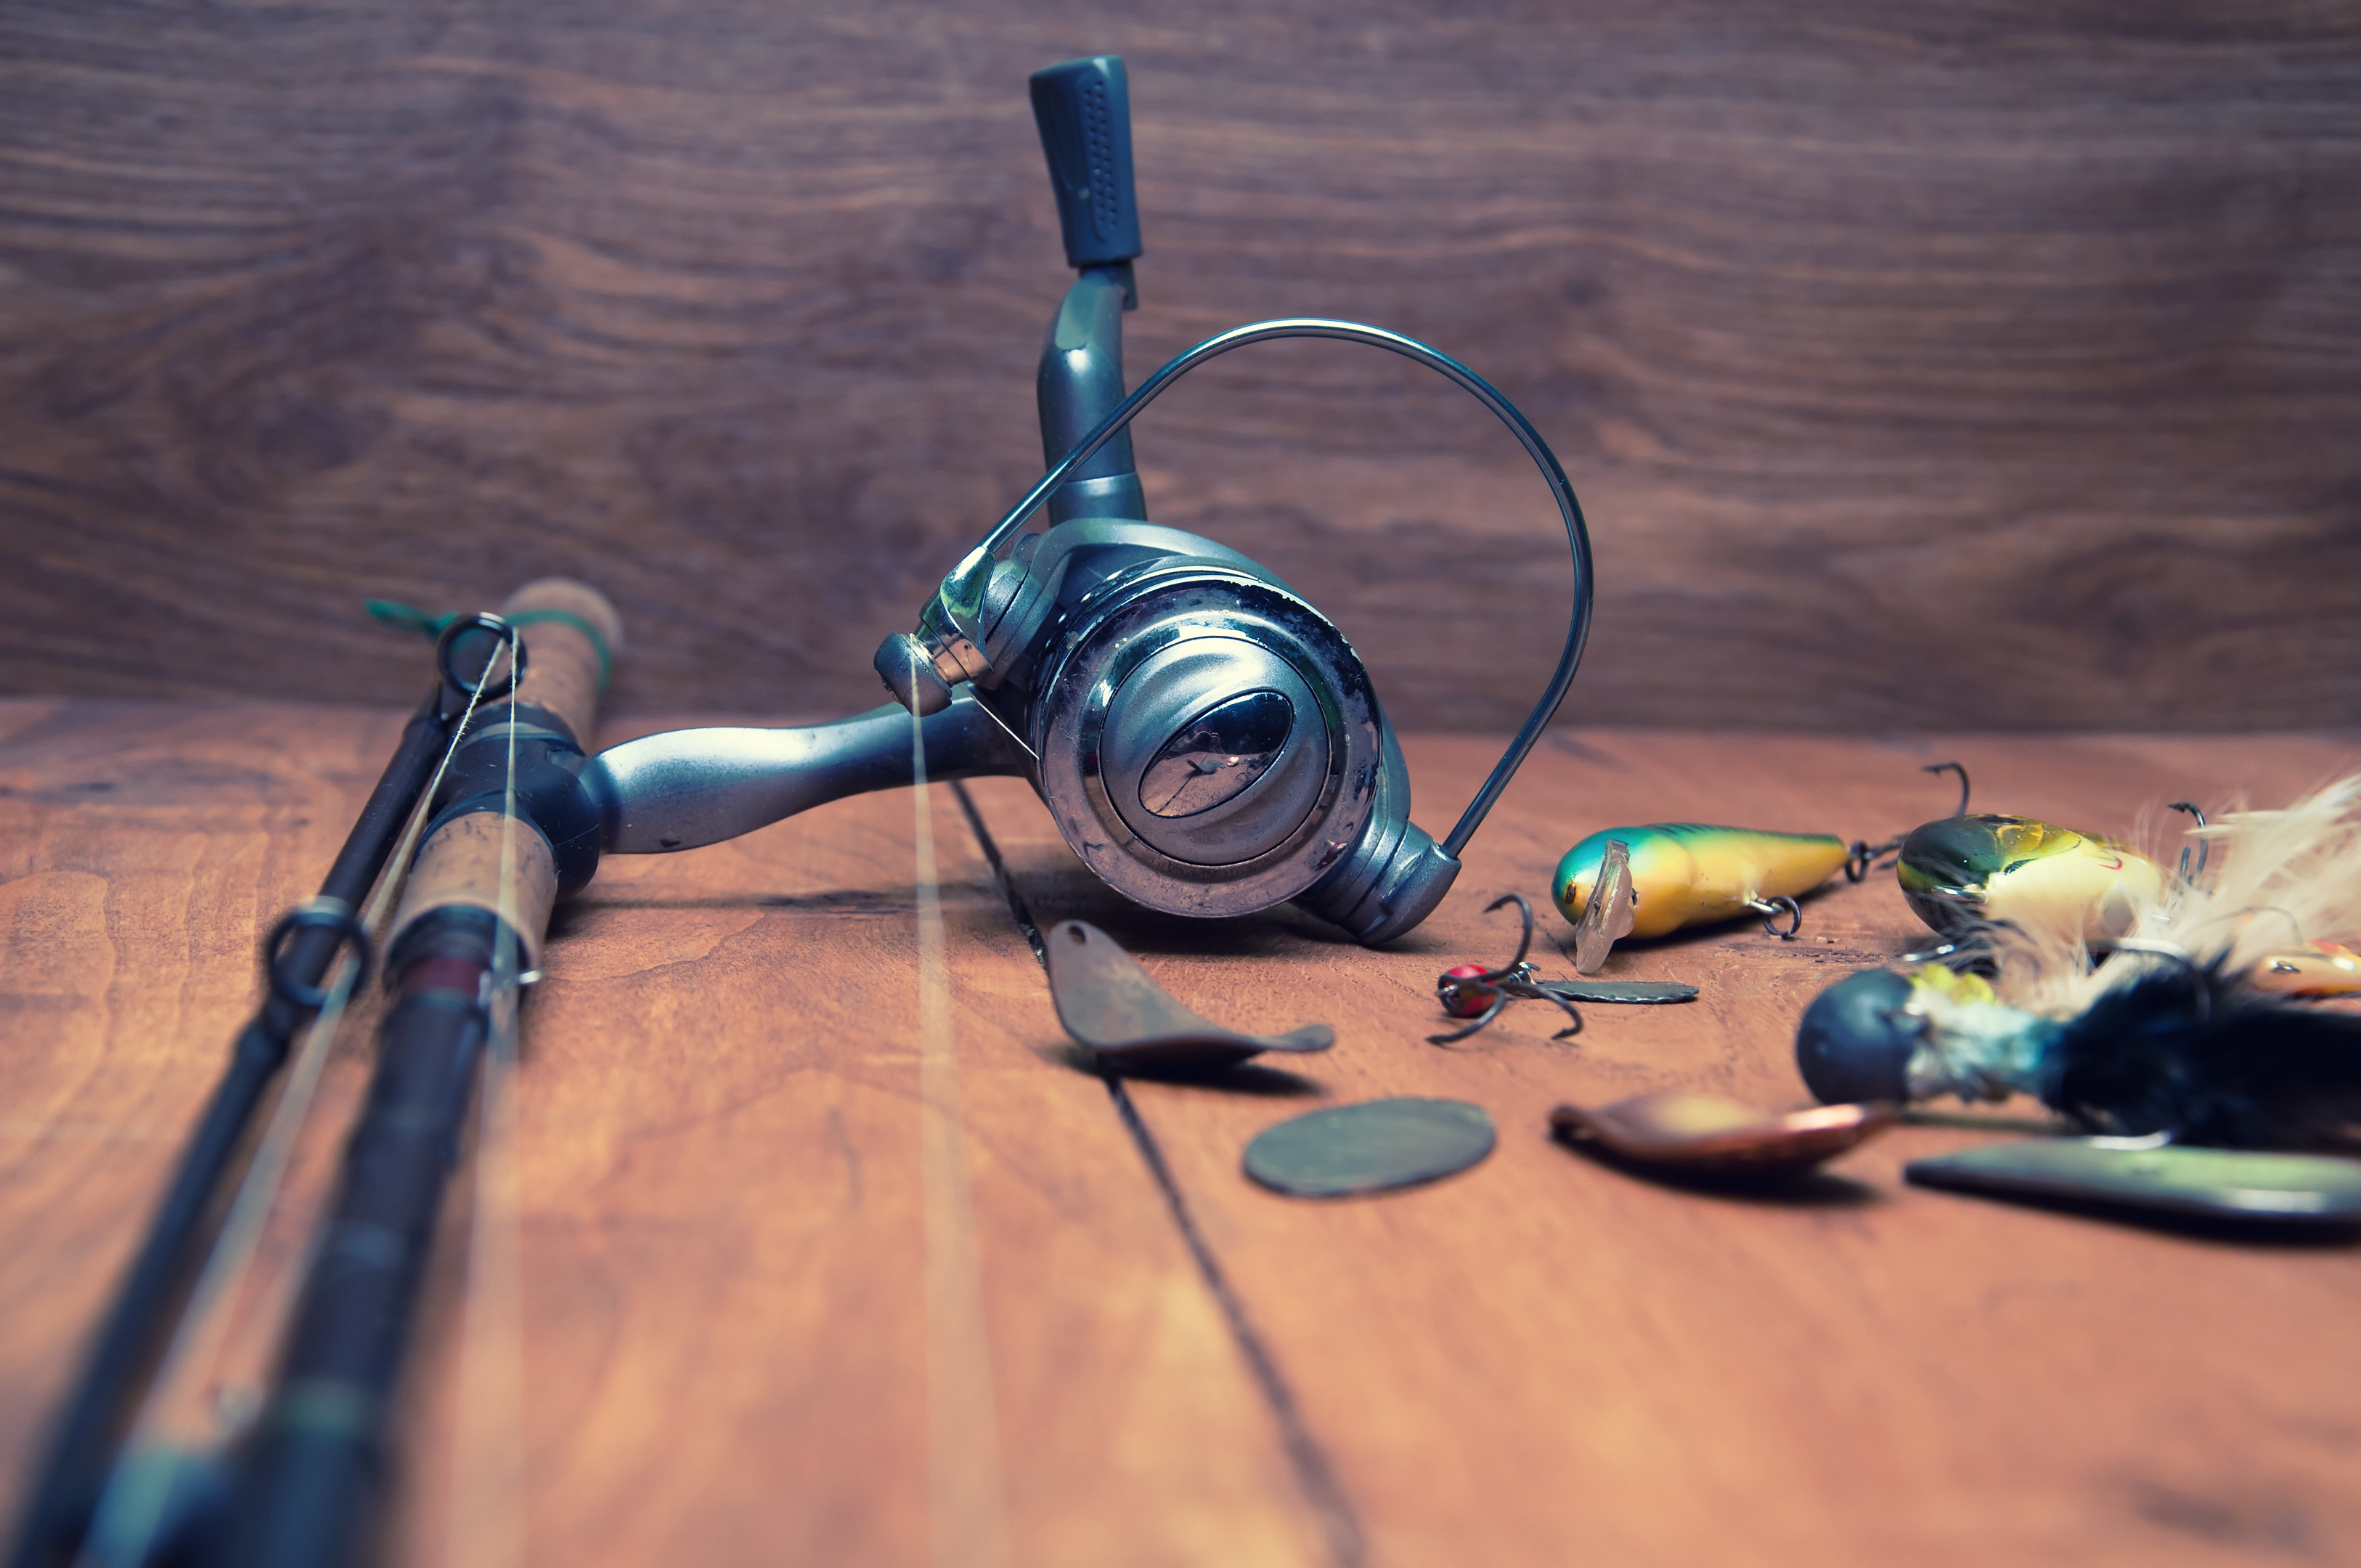 Fishing equipment (stock image)